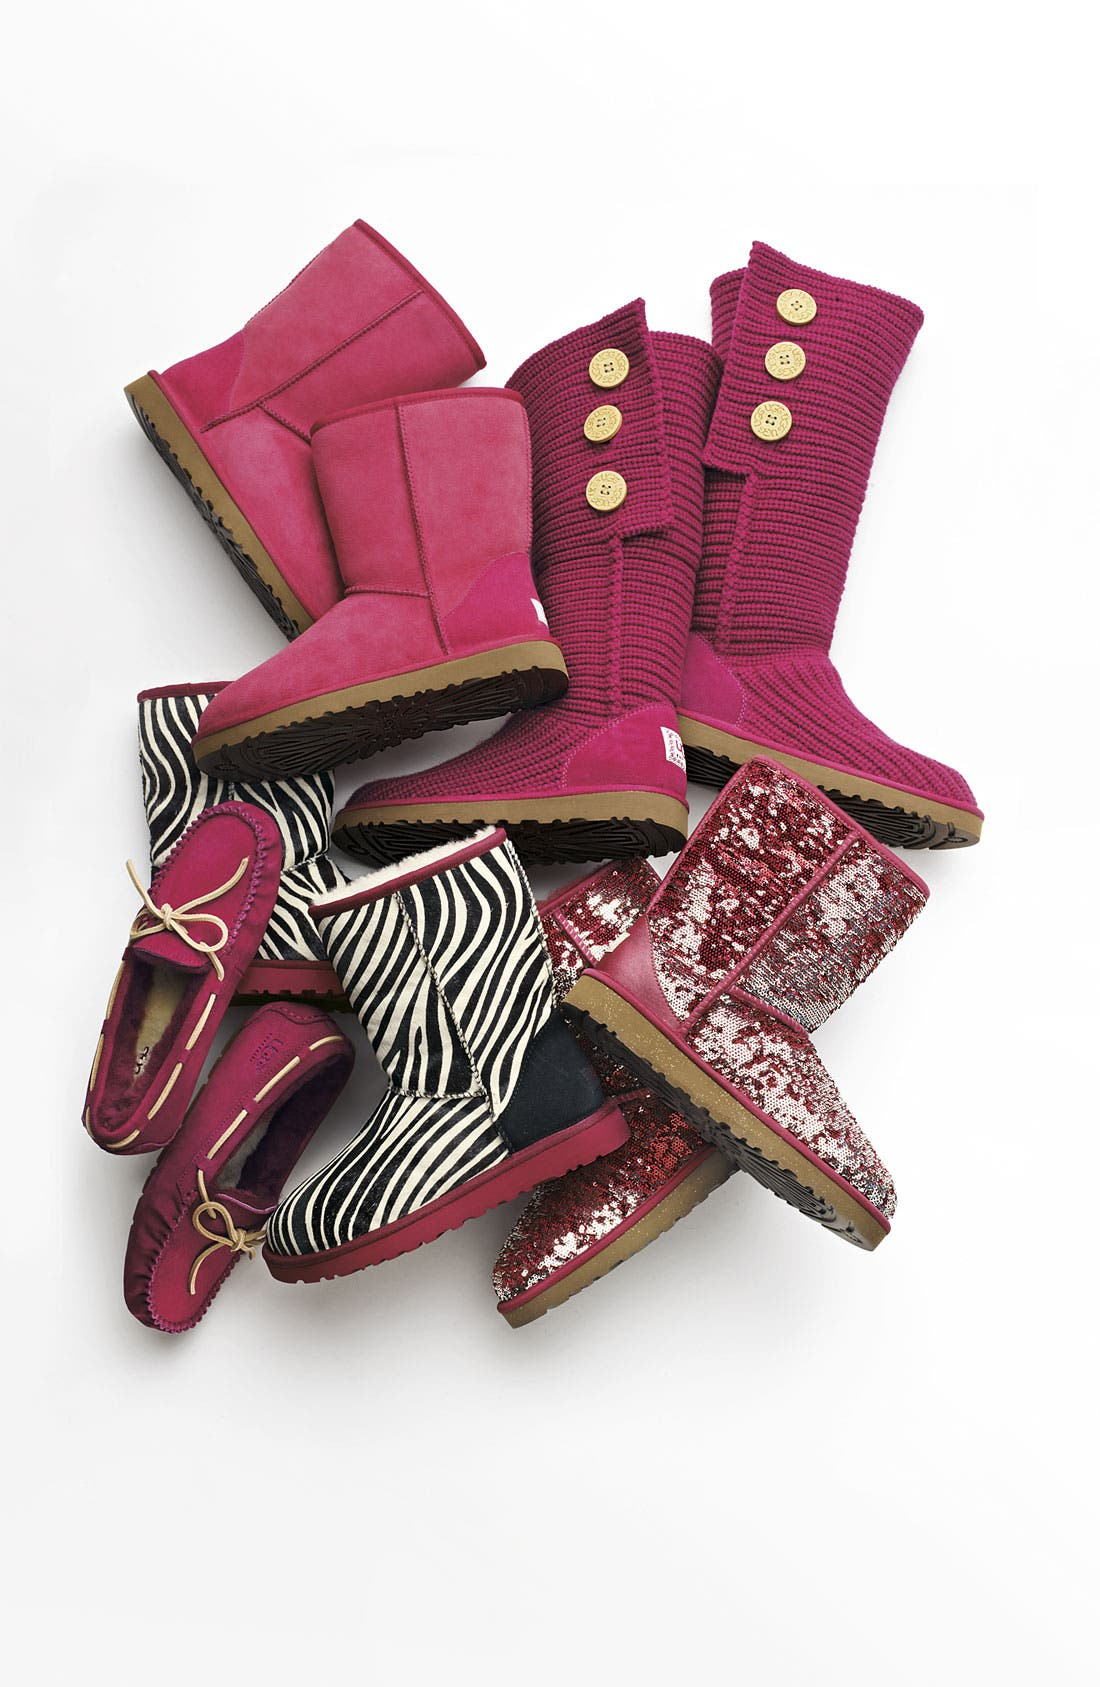 'Cardy' Classic Knit Boot,                             Main thumbnail 1, color,                             400